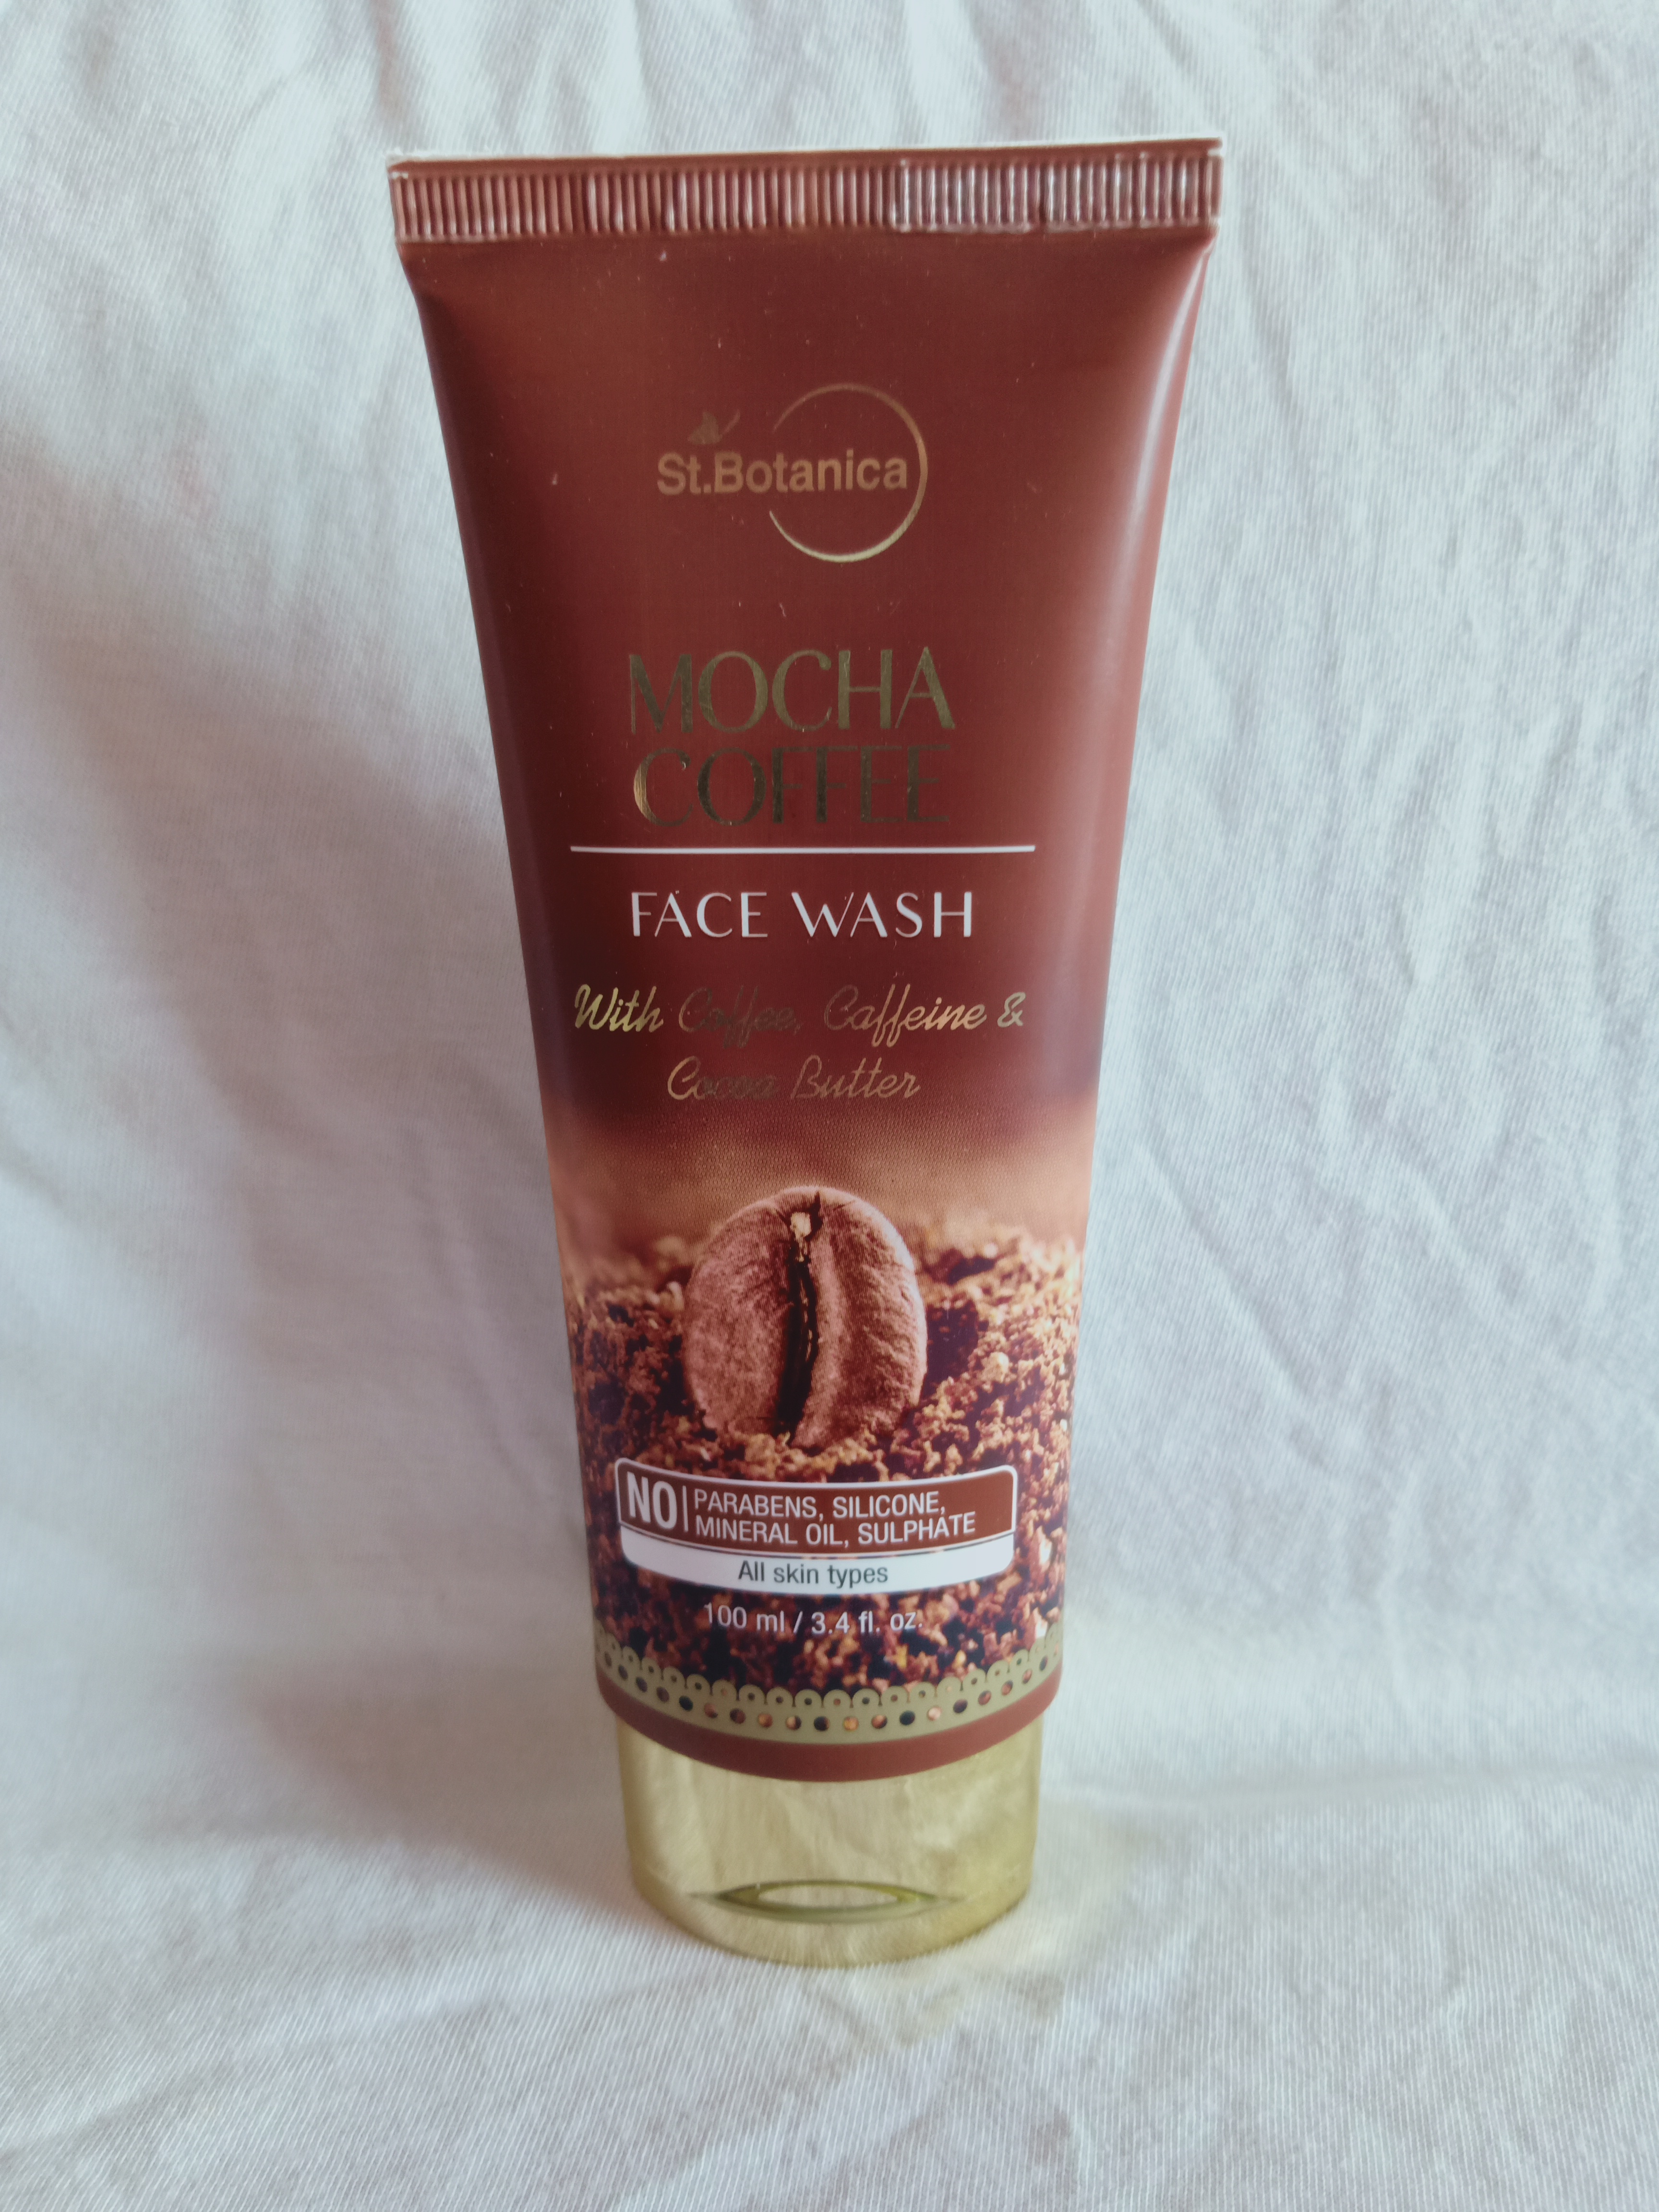 St.Botanica Mocha Coffee Face Wash-I love this product-By jhashruti